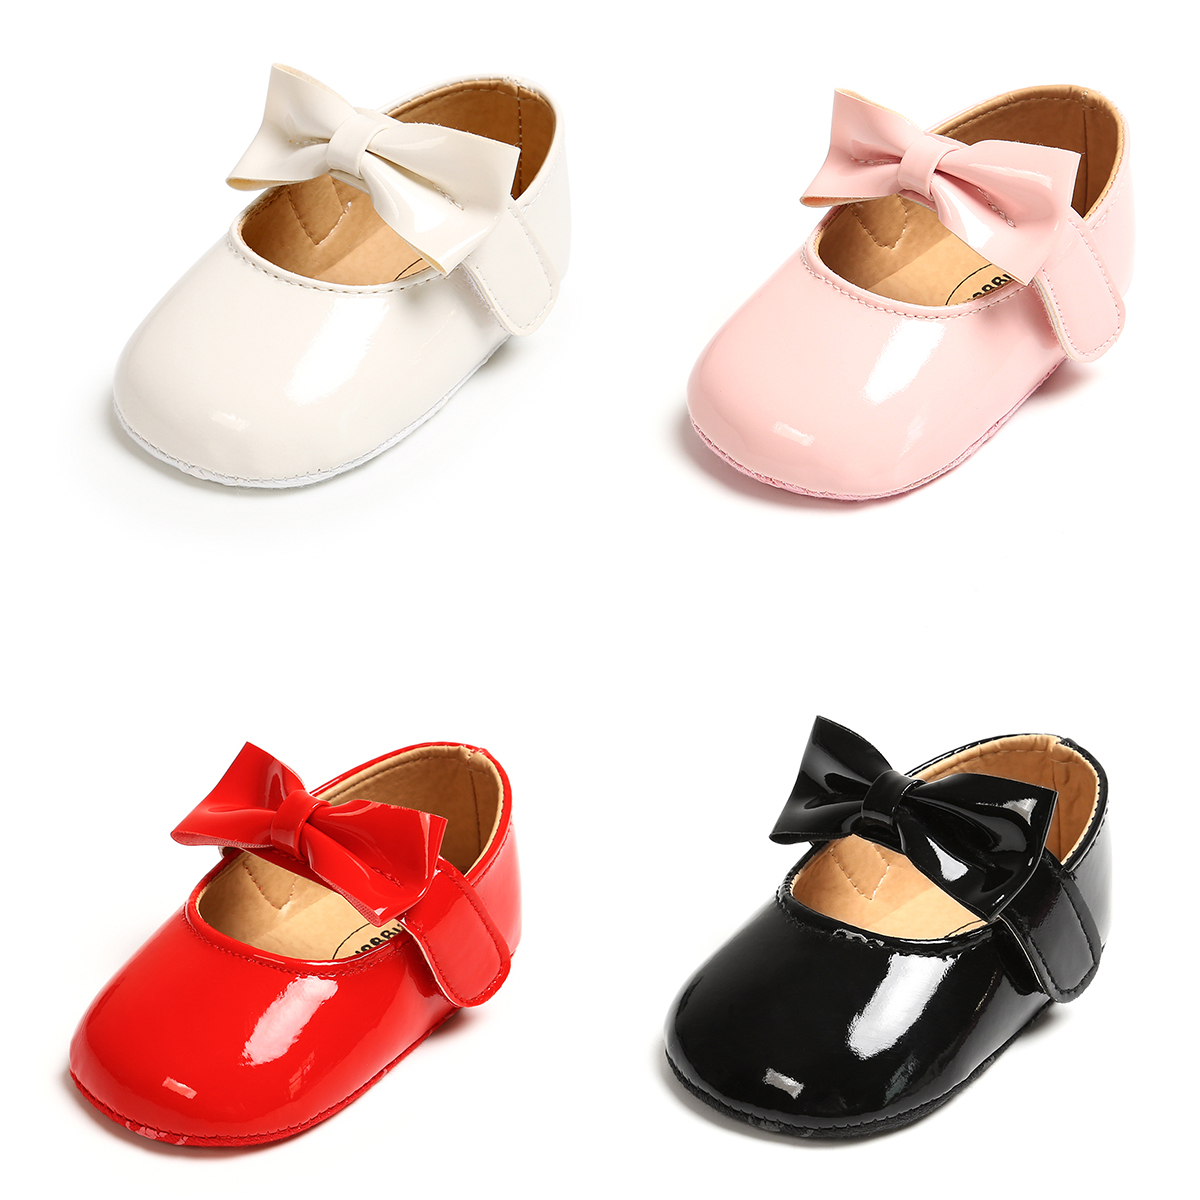 PU Leather Buckle First Walkers With Bow Newborn Baby Girls Shoes L